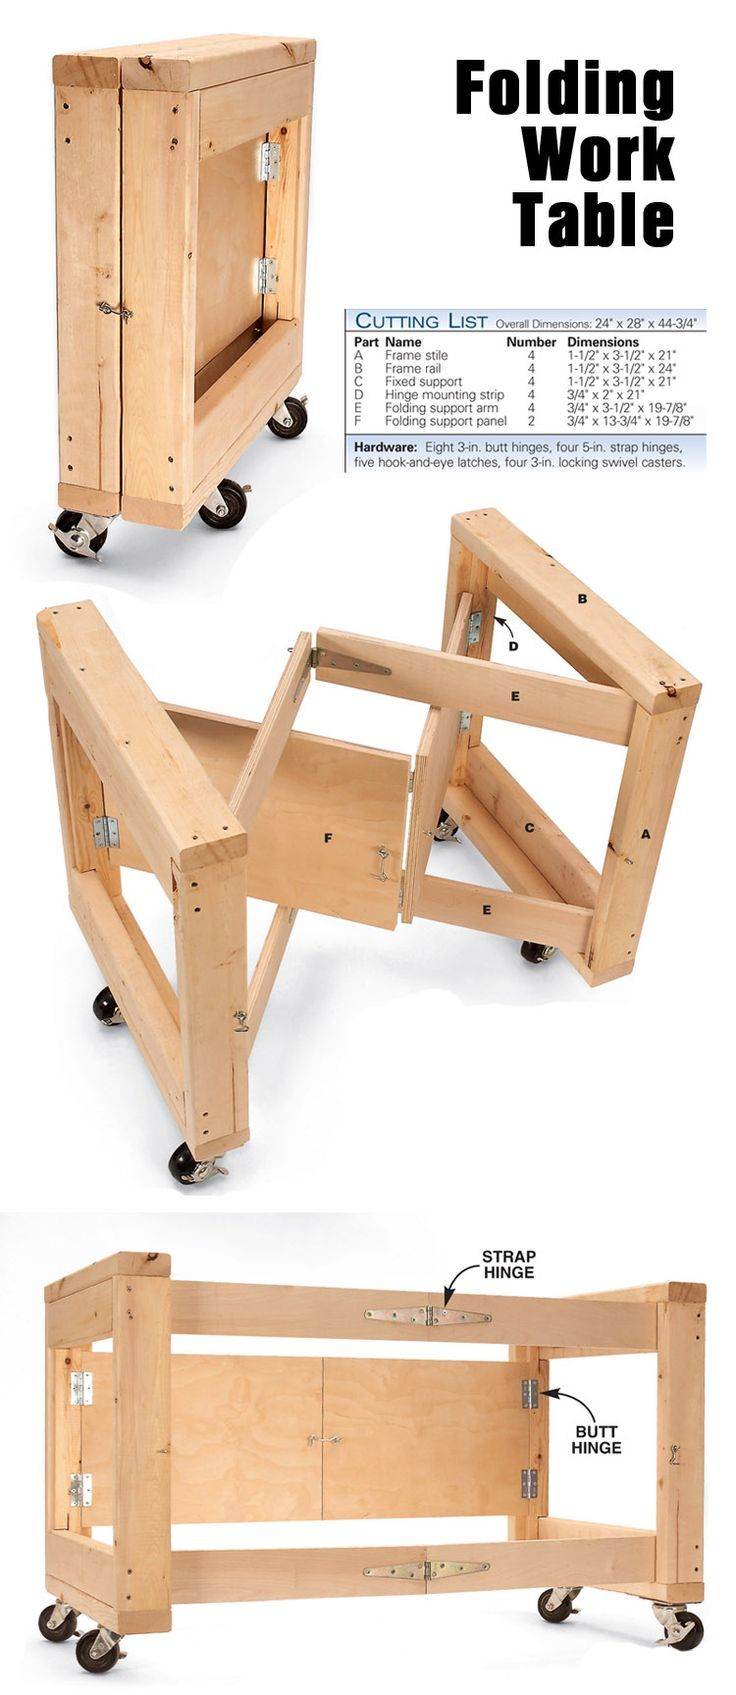 Space Saving Folding Work Table www.popularwoodwo...: